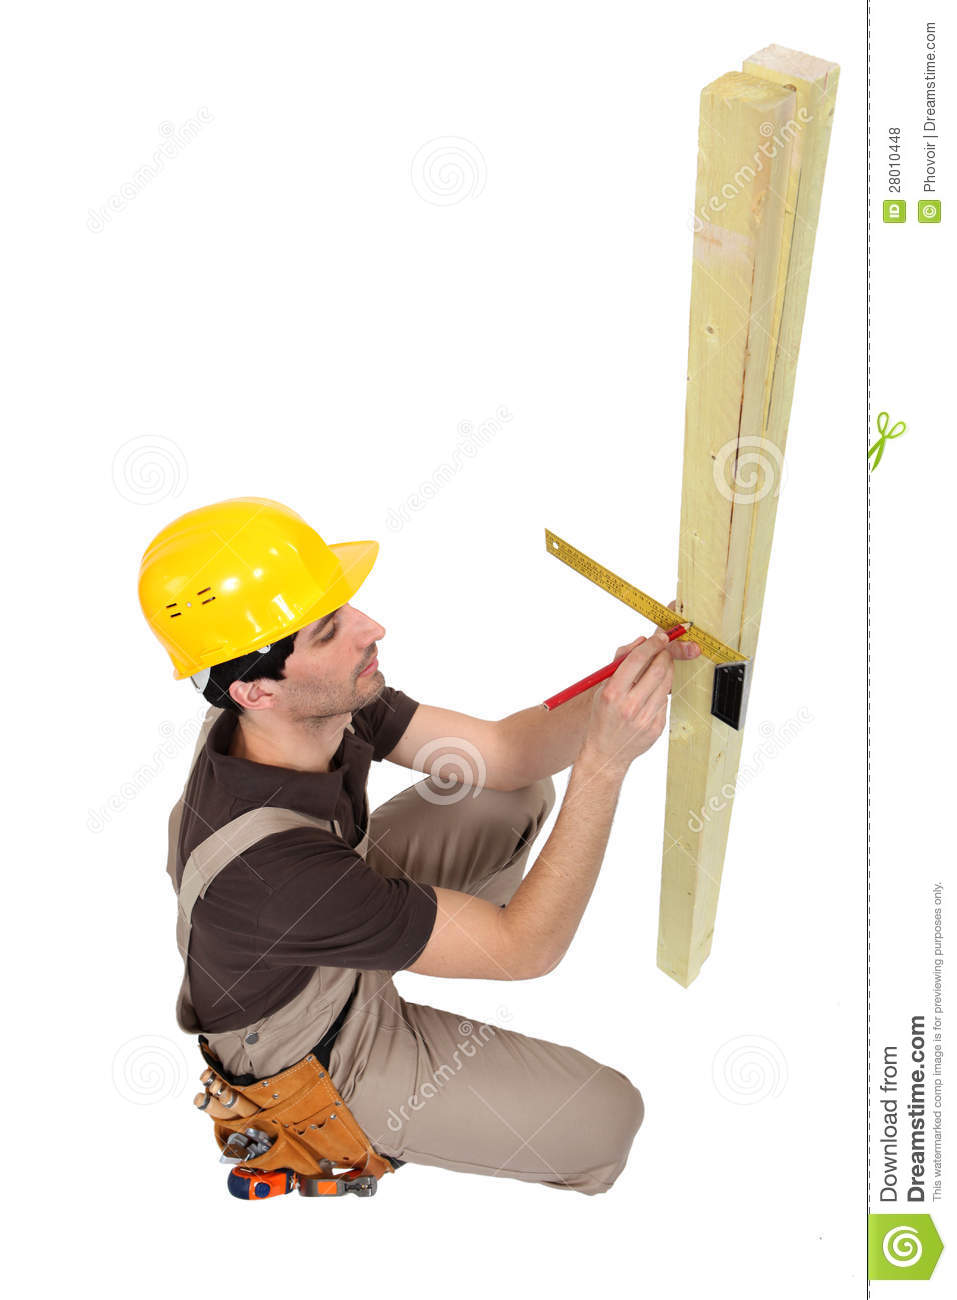 Carpentry Carpenter Woodworker Woodworking Wooden: Carpenter Marking Wood Royalty Free Stock Photos